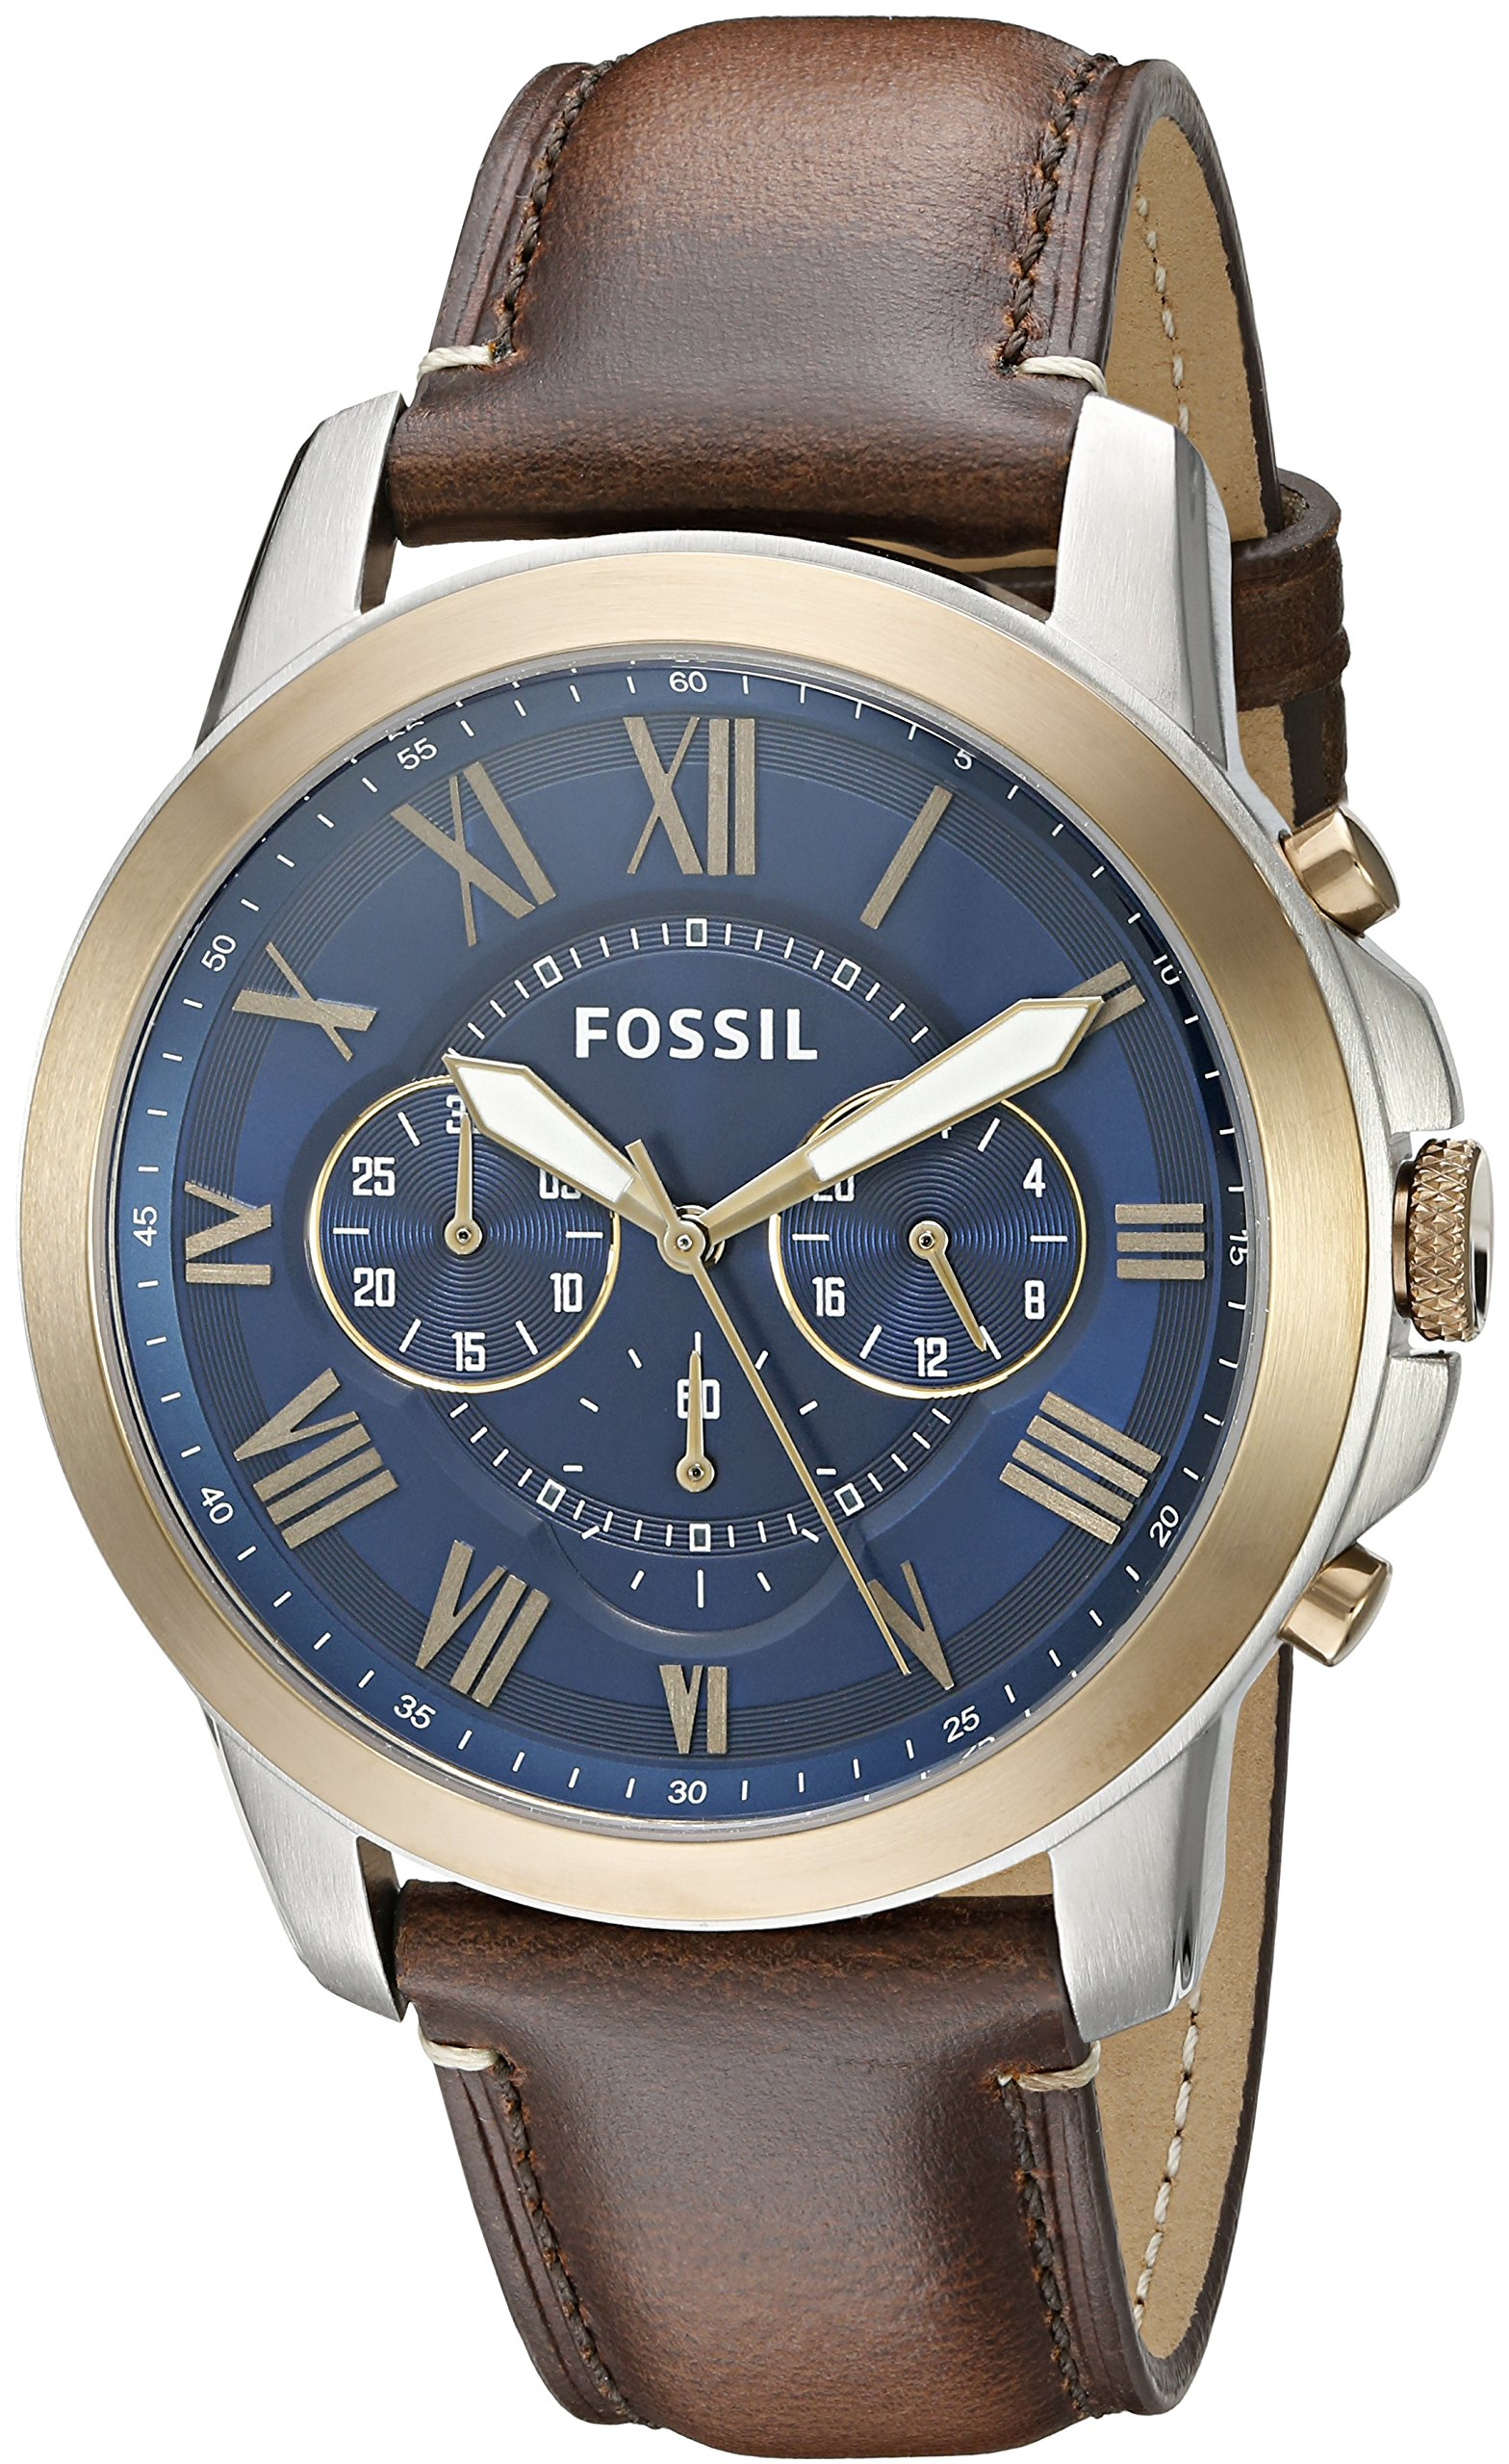 Fossil Men's FS5150 Grant Chronograph Dark Brown Leather Watch by Fossil